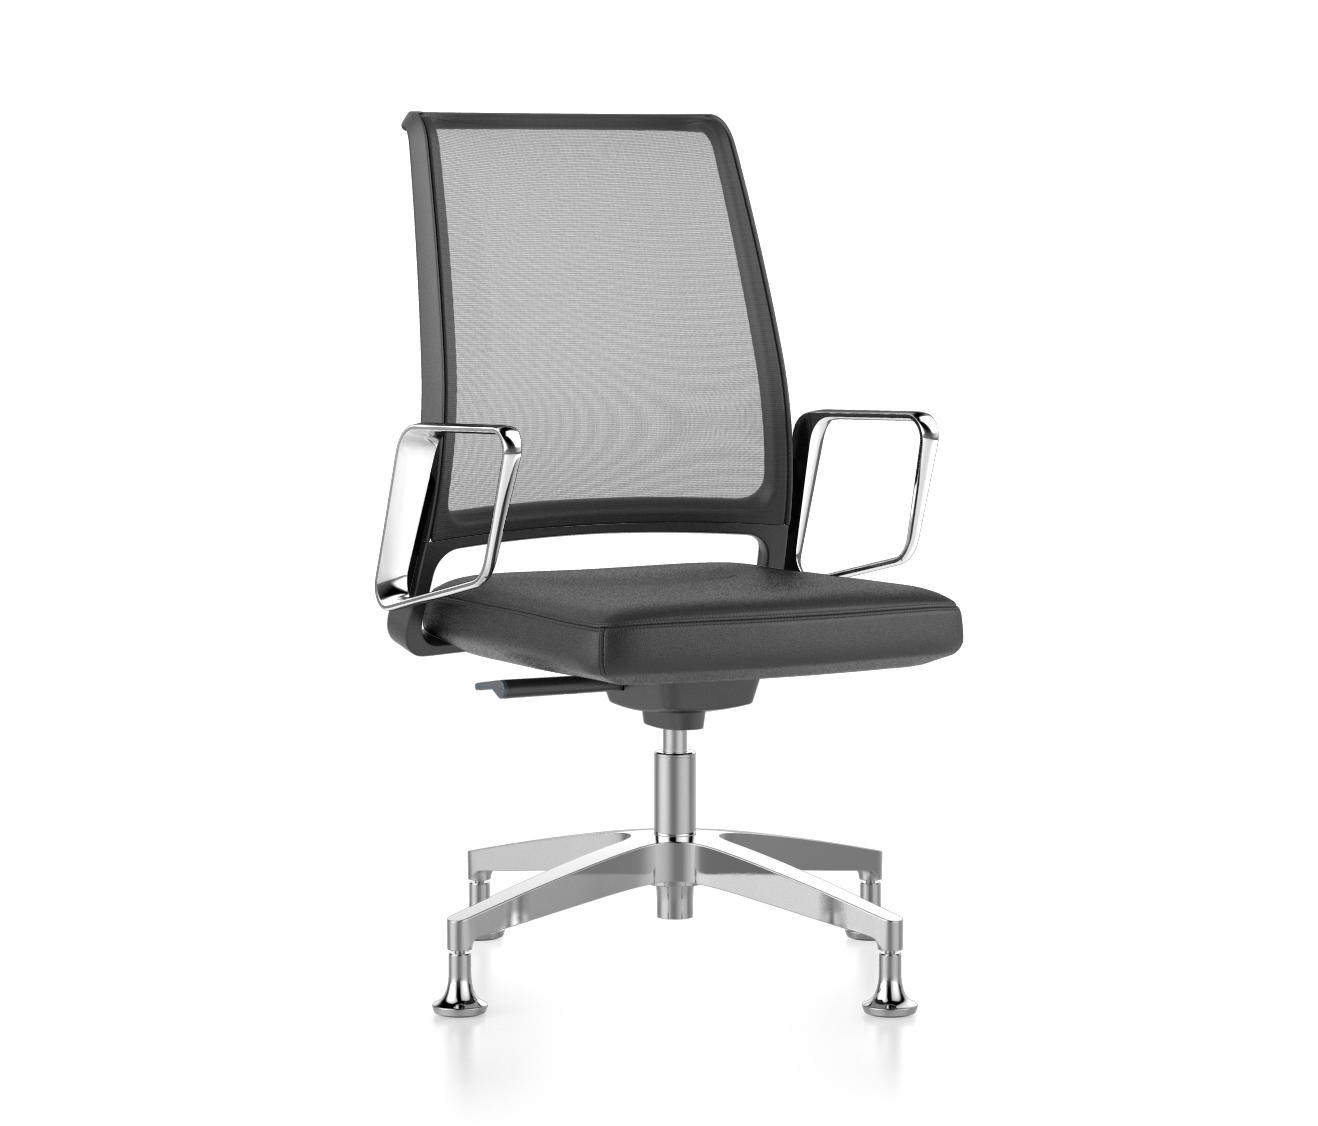 Vintageis5 14v7 conference chairs from interstuhl for Buero moebel